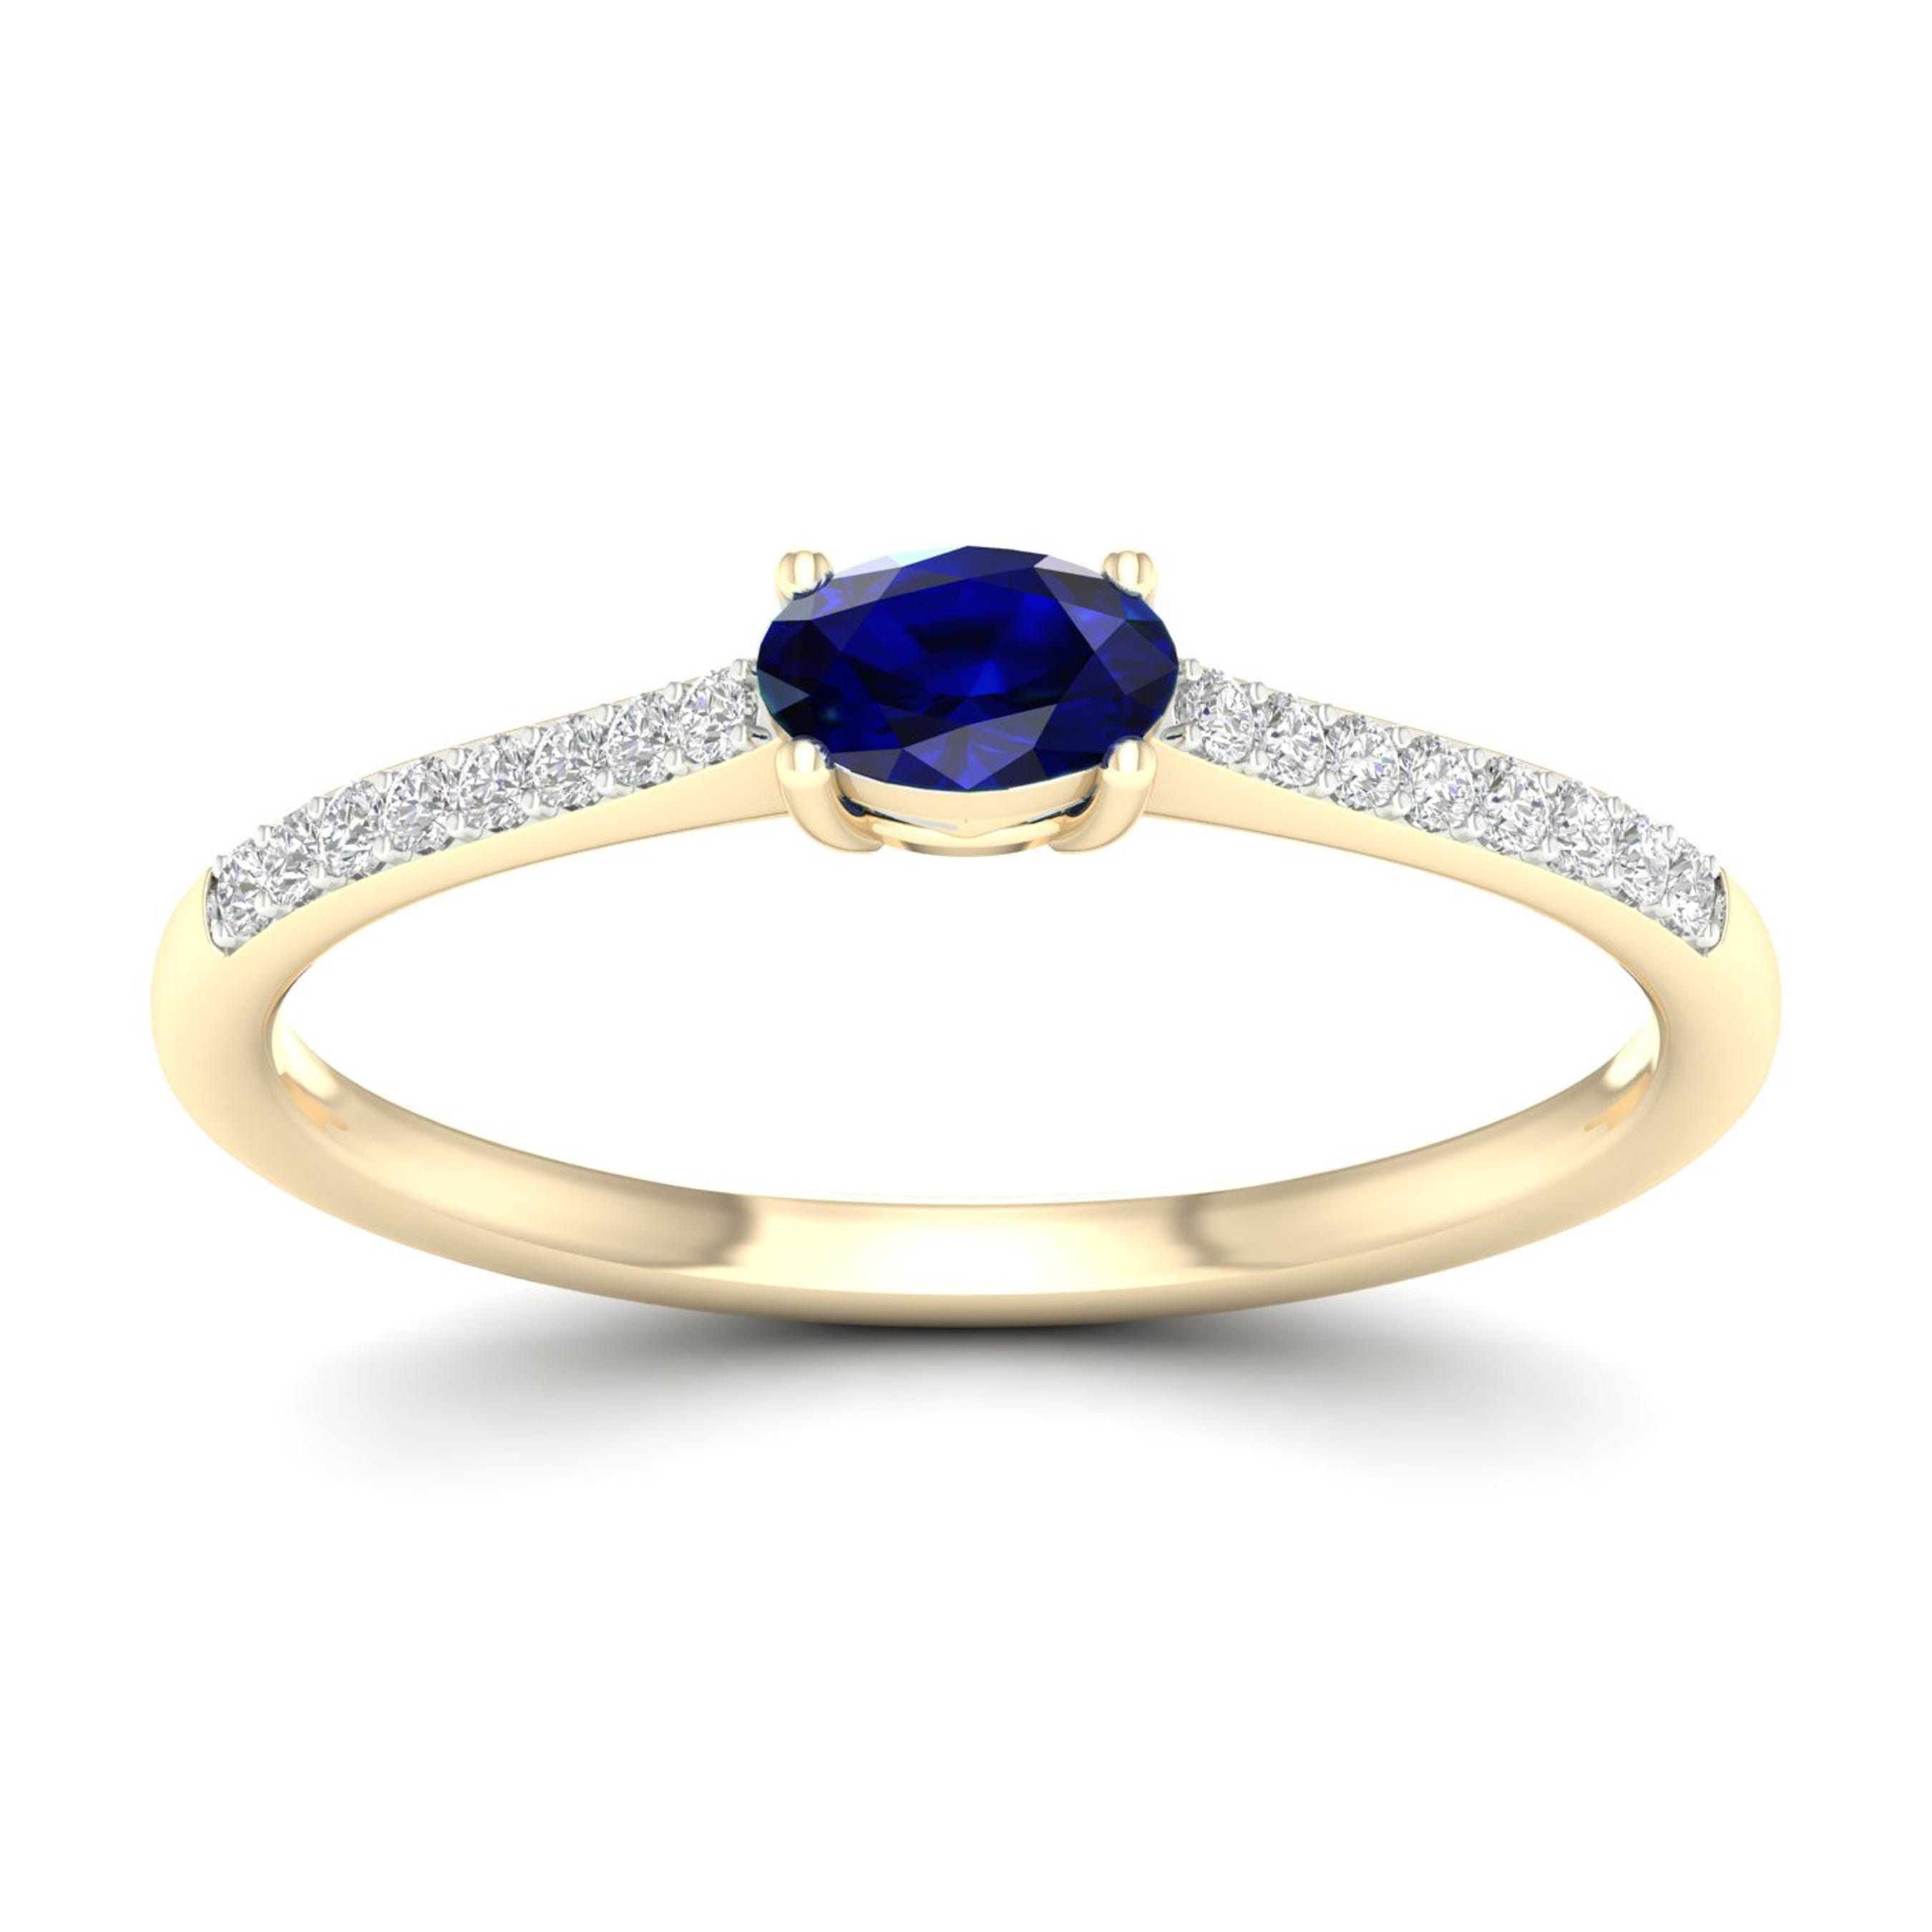 Oval Blue Sapphire Classic Ring in 10k Yellow Gold